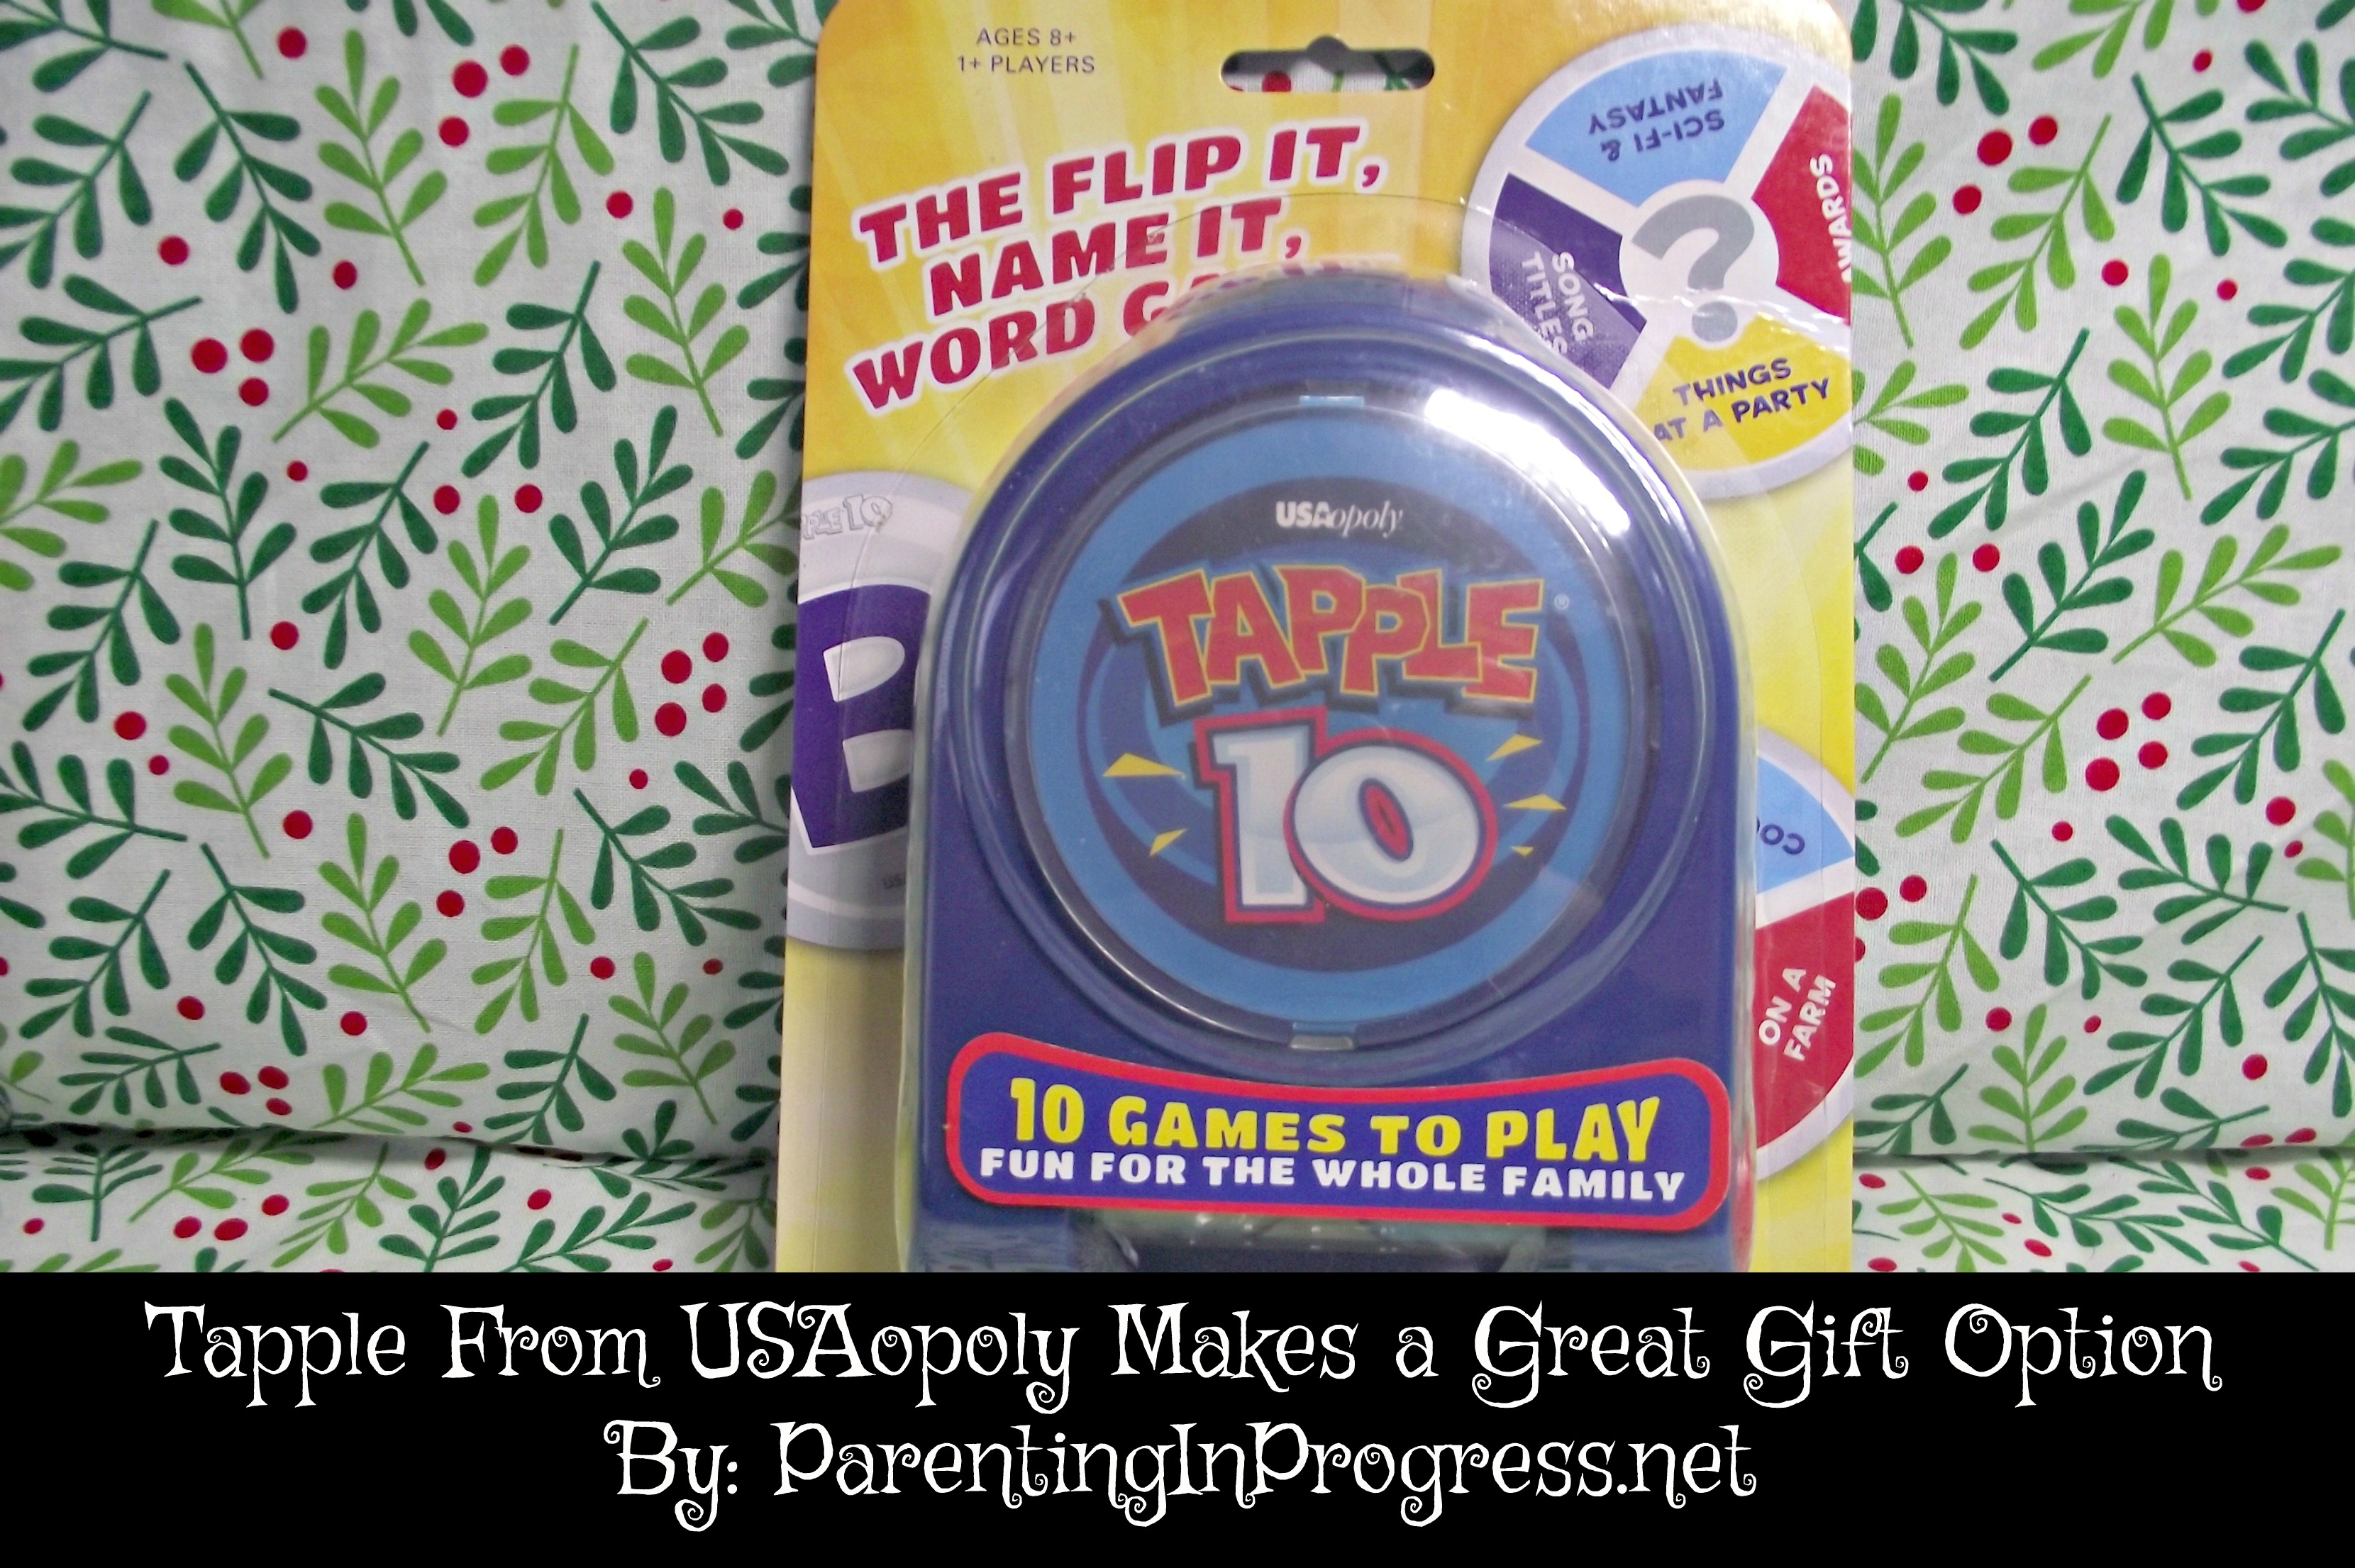 Tapple 10 From USAopoly Makes a Great Gift Option